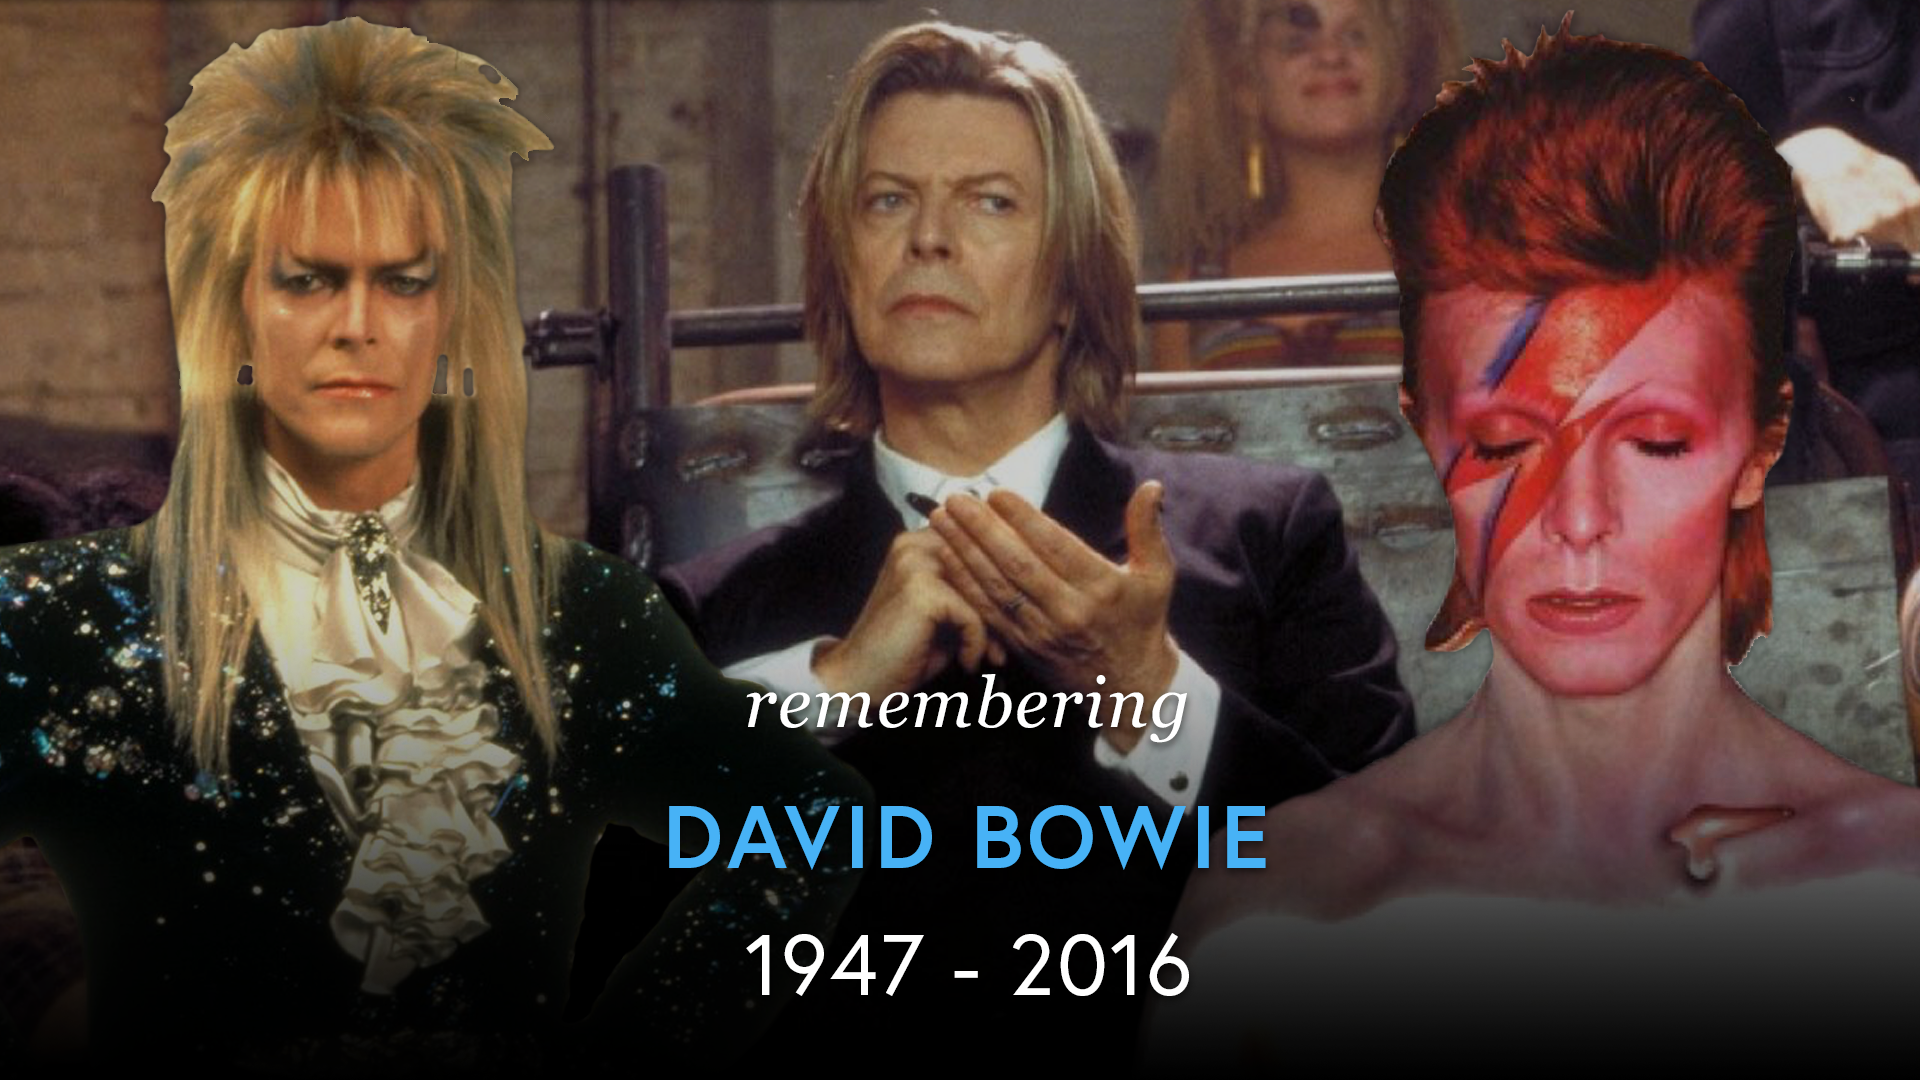 Remembering David Bowie (1947 - 2016) screen capture